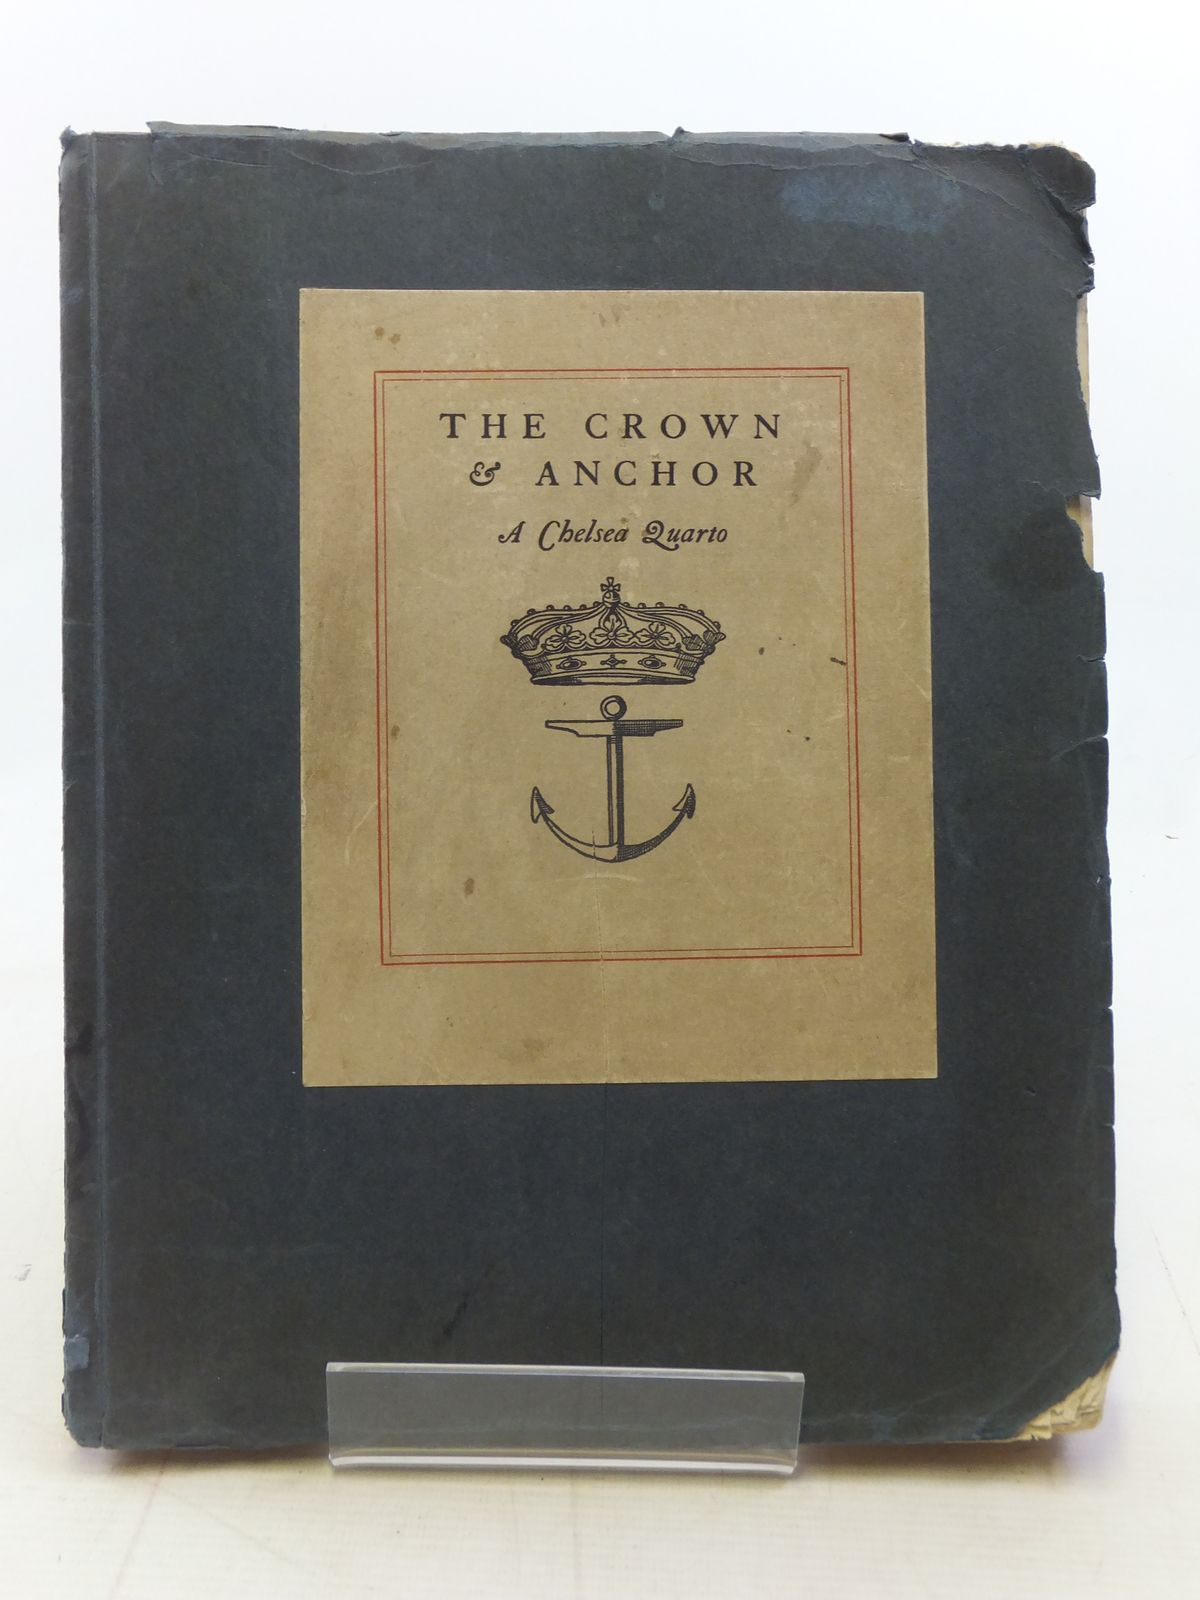 Photo of THE CROWN & ANCHOR A CHELSEA QUARTO written by Blunt, Reginald published by The Chelsea Publishing Company, The Cayme Press (STOCK CODE: 1606227)  for sale by Stella & Rose's Books